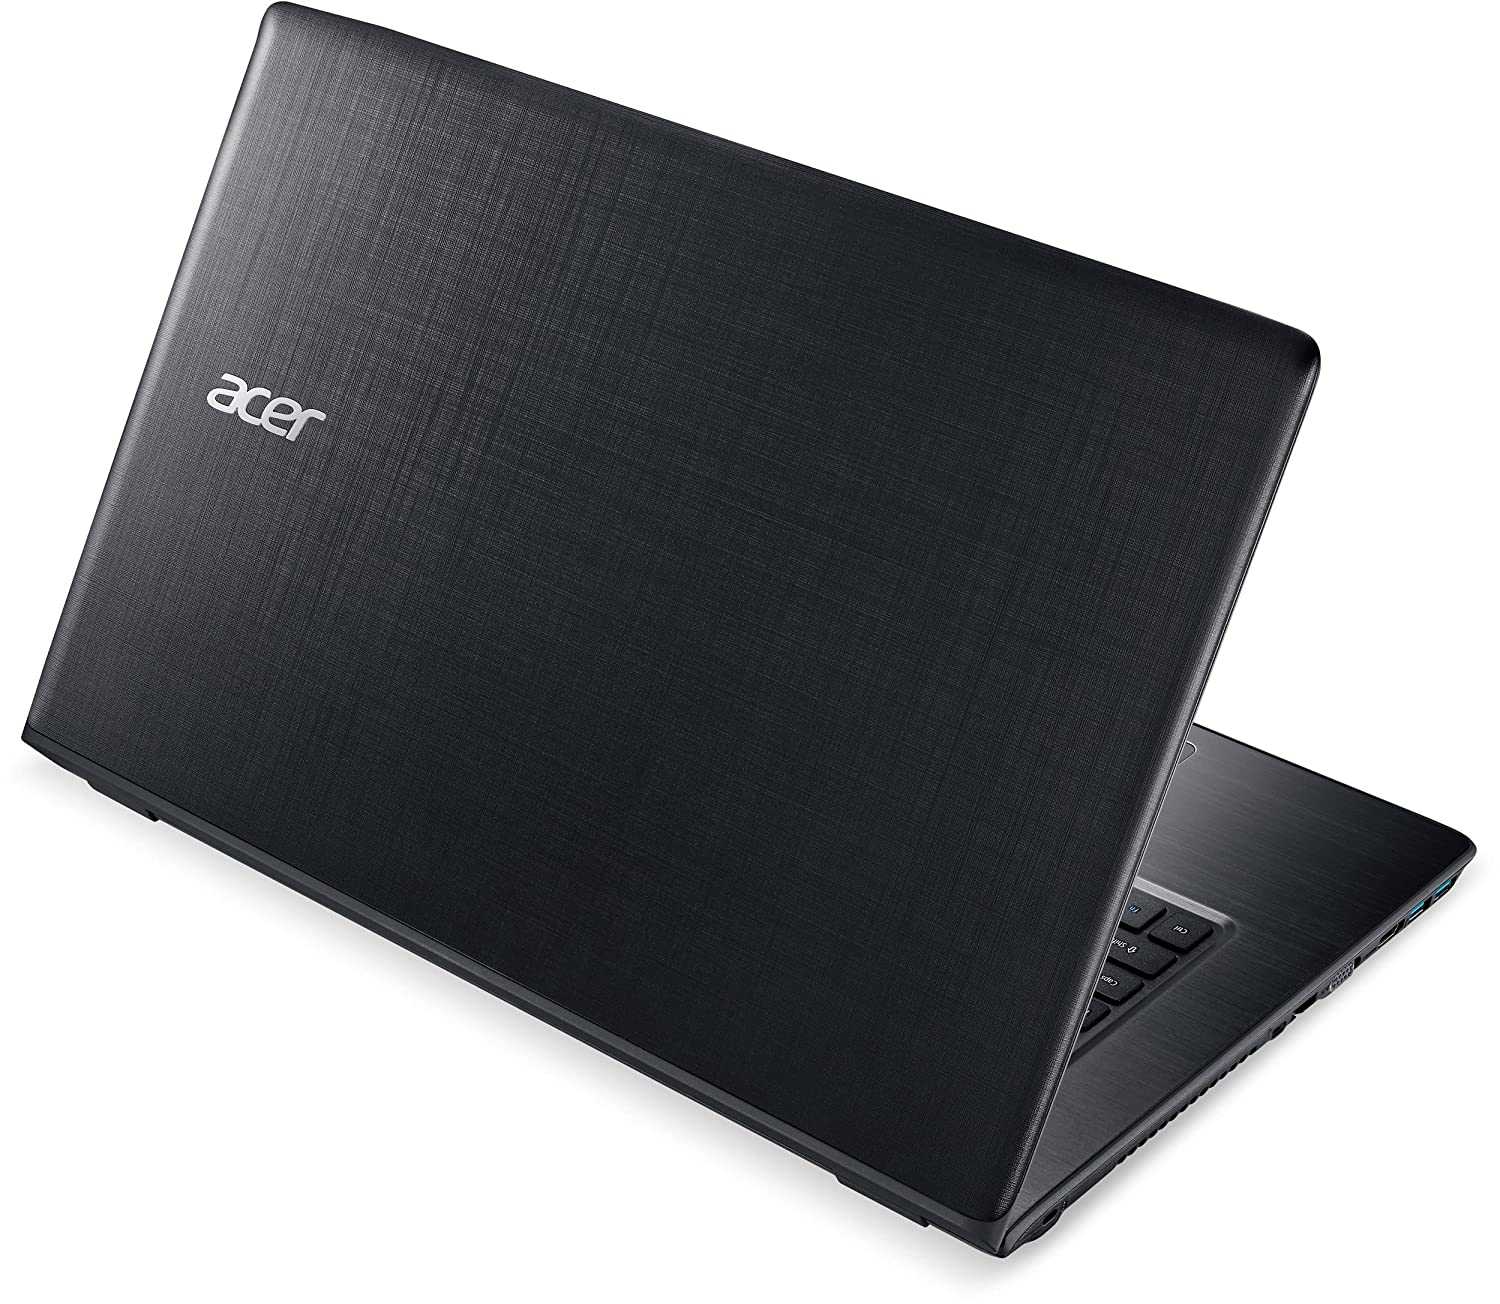 Acer Aspire E5-774G-553R 17 Zoll Multimedia Notebook mit Kaby Lake